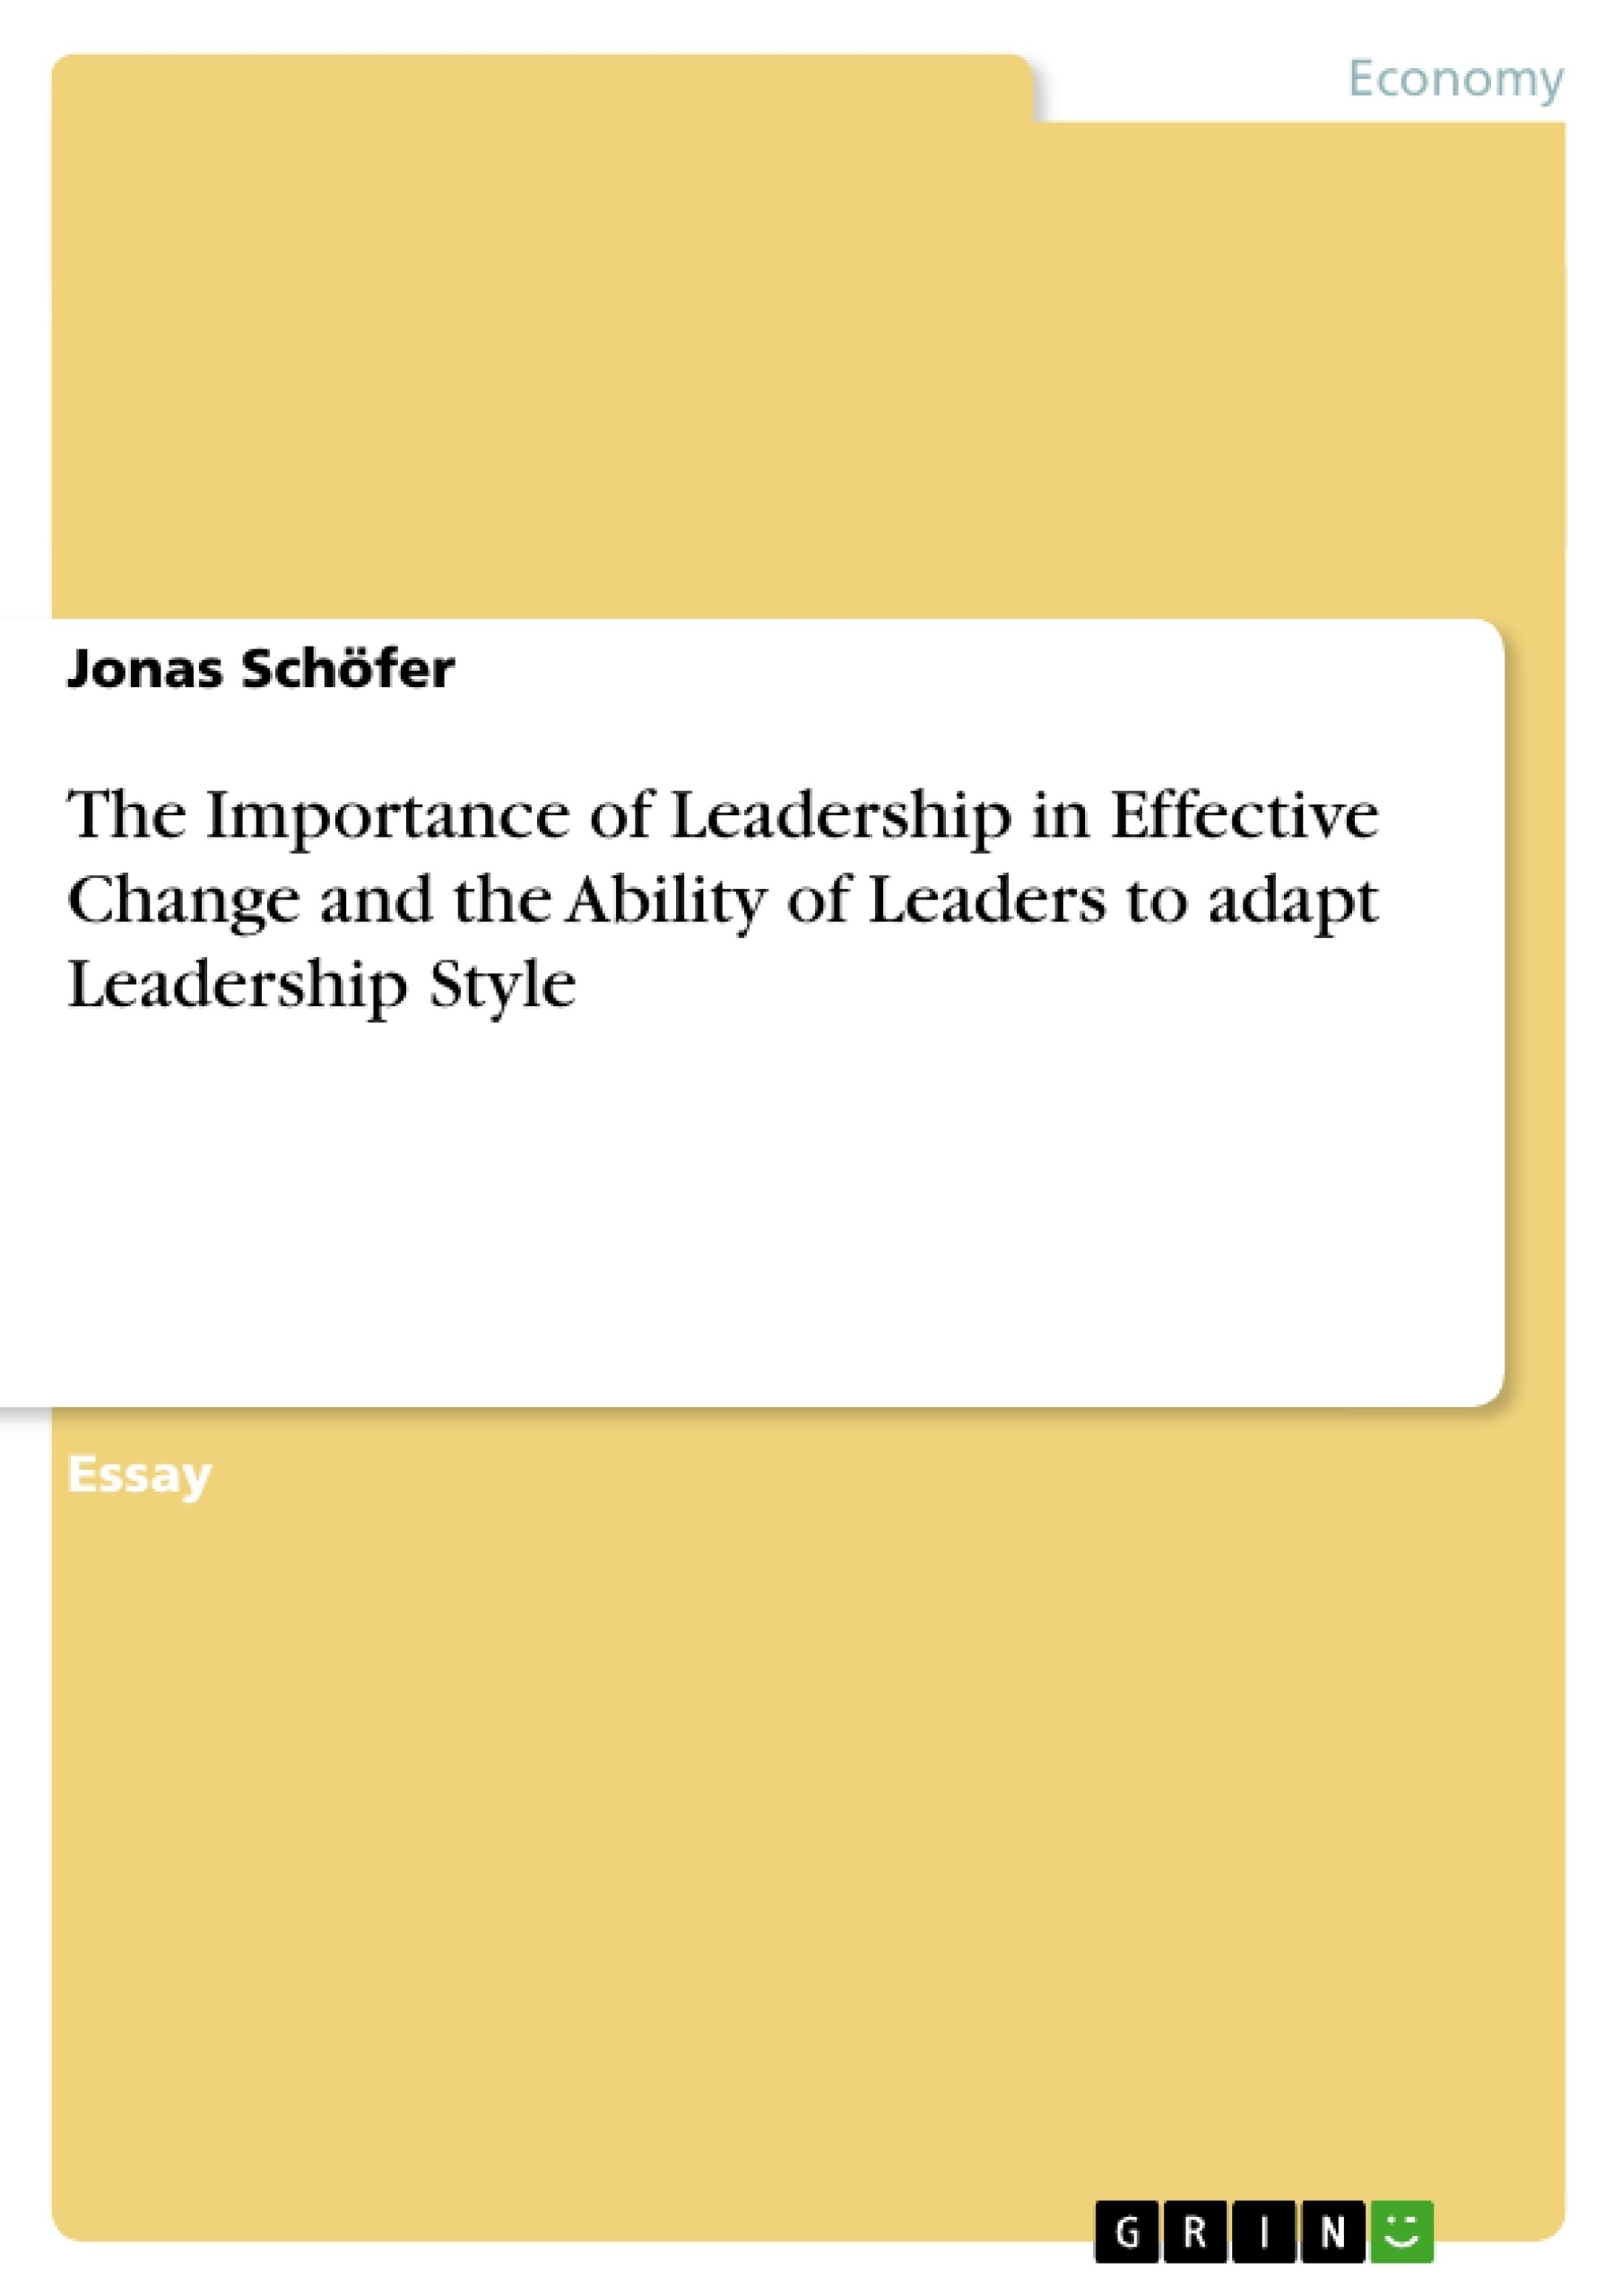 essay on effective leadership effective manager essay examples of  the importance of leadership in effective change and the ability the importance of leadership in effective